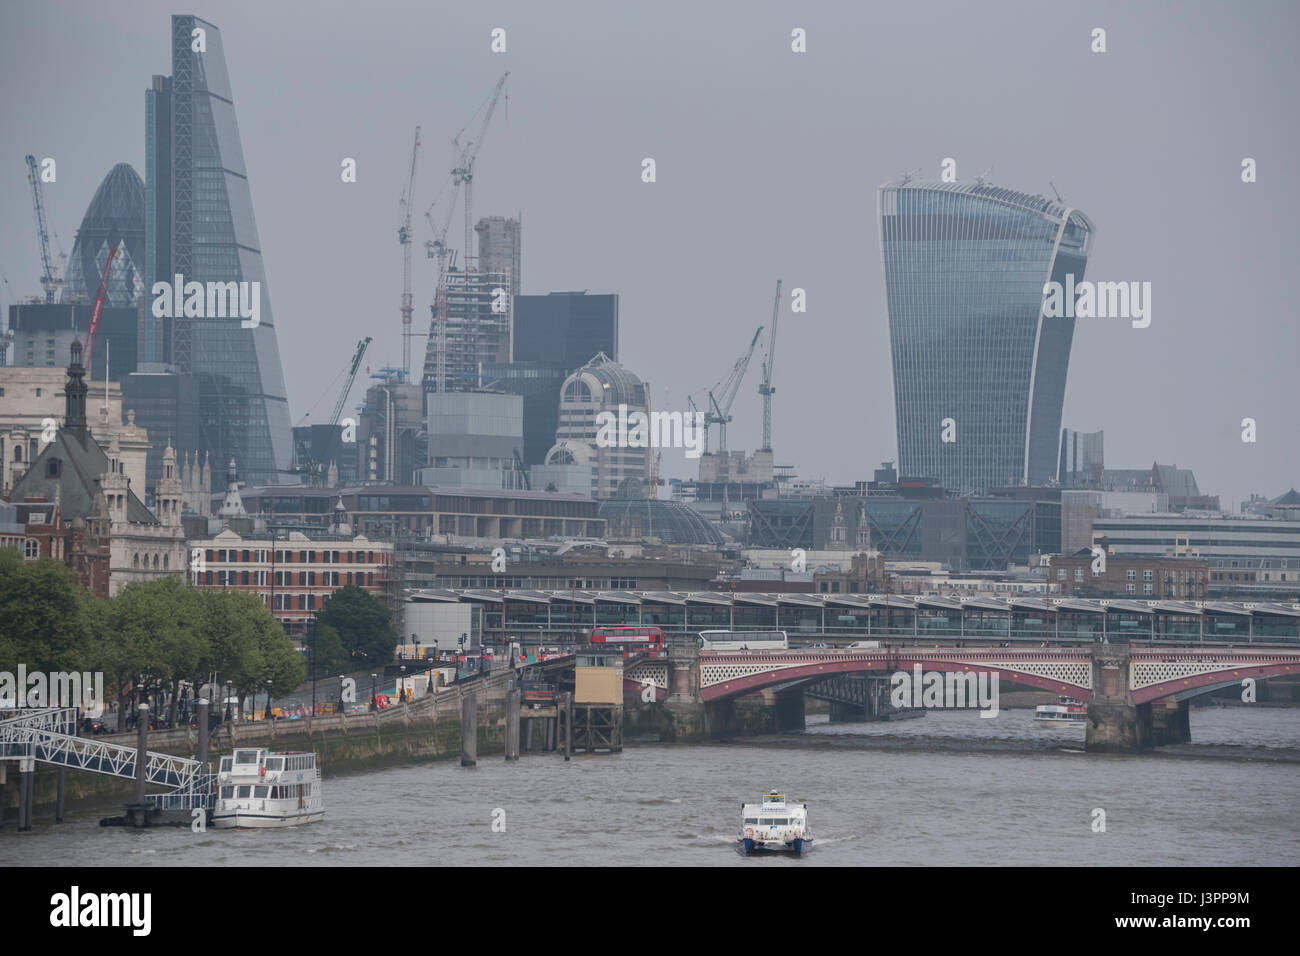 A hazey afternoon in London - Stock Image